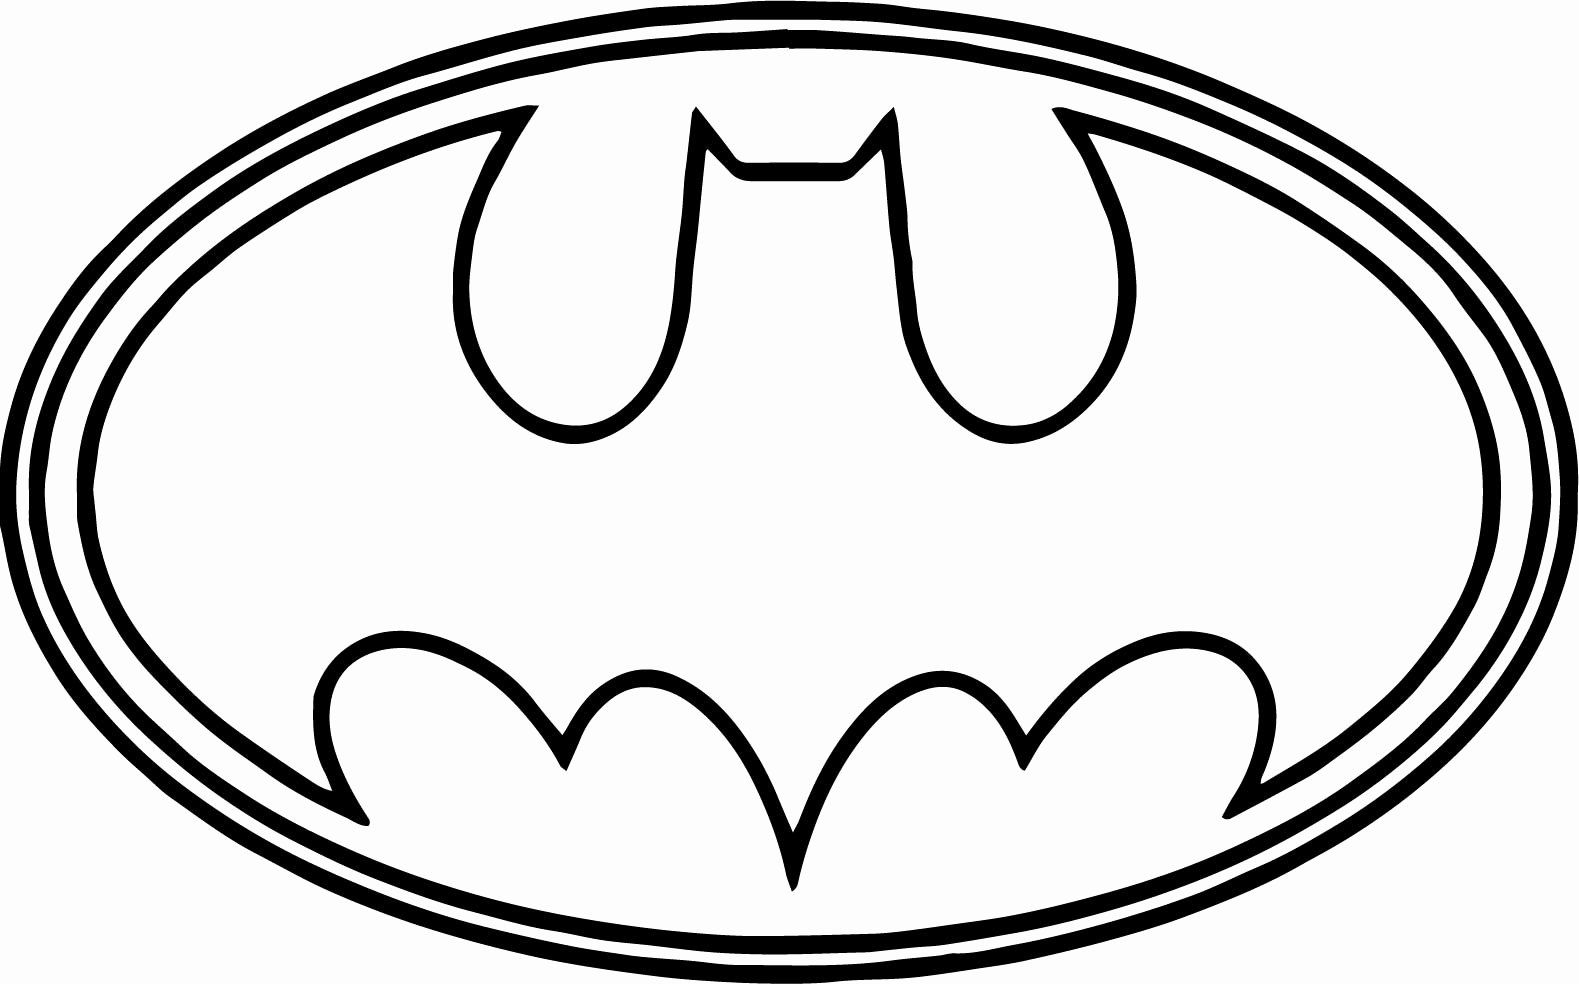 Batman Symbol Coloring Page Best Of Batman Logo Outline Coloring Page Batman Coloring Pages Coloring Pages Bat Coloring Pages